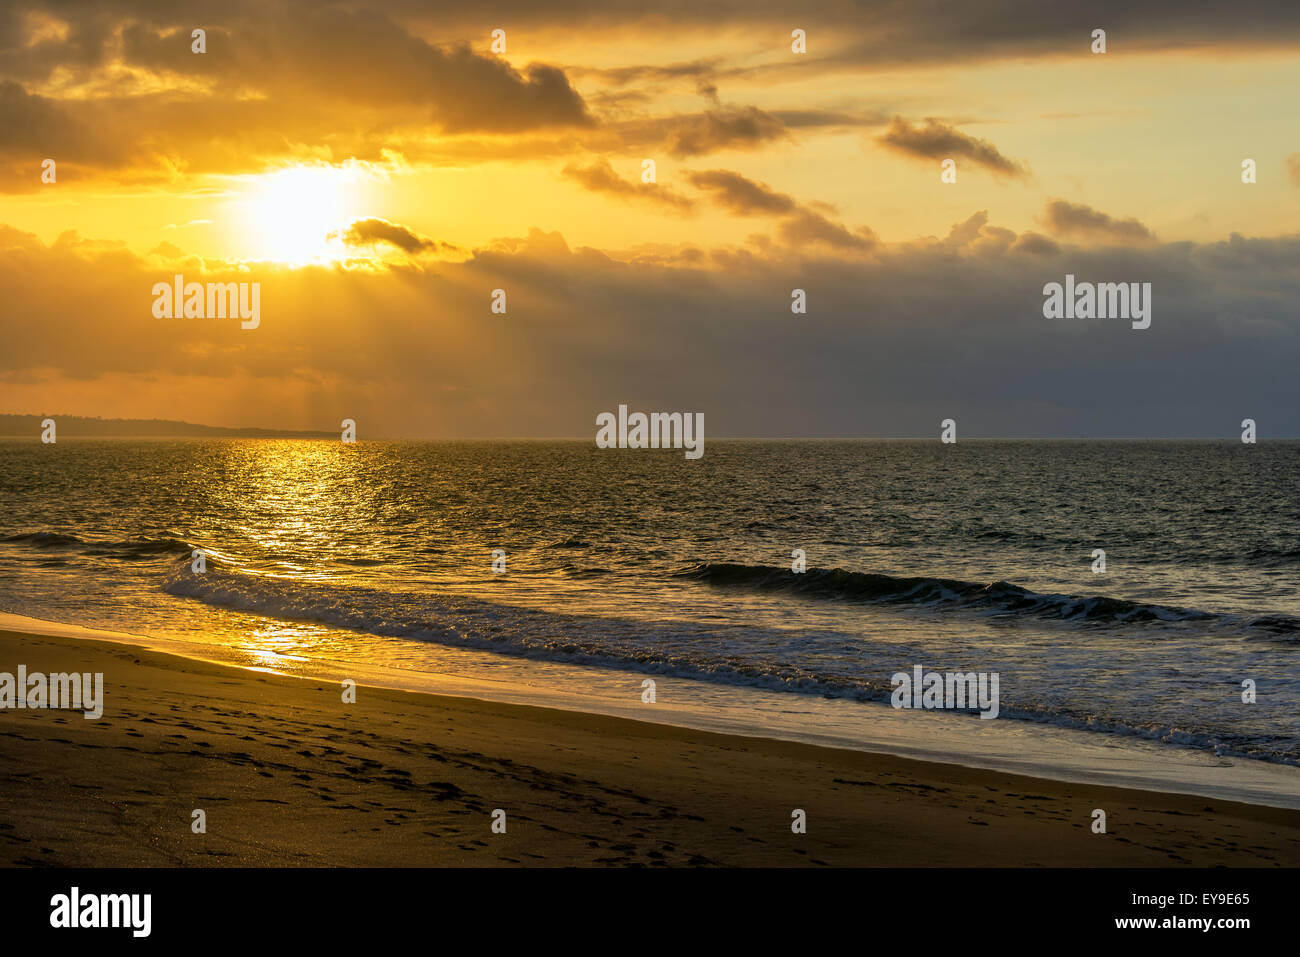 Dramatic sunset over the Pacific Ocean in Same, Ecuador - Stock Image